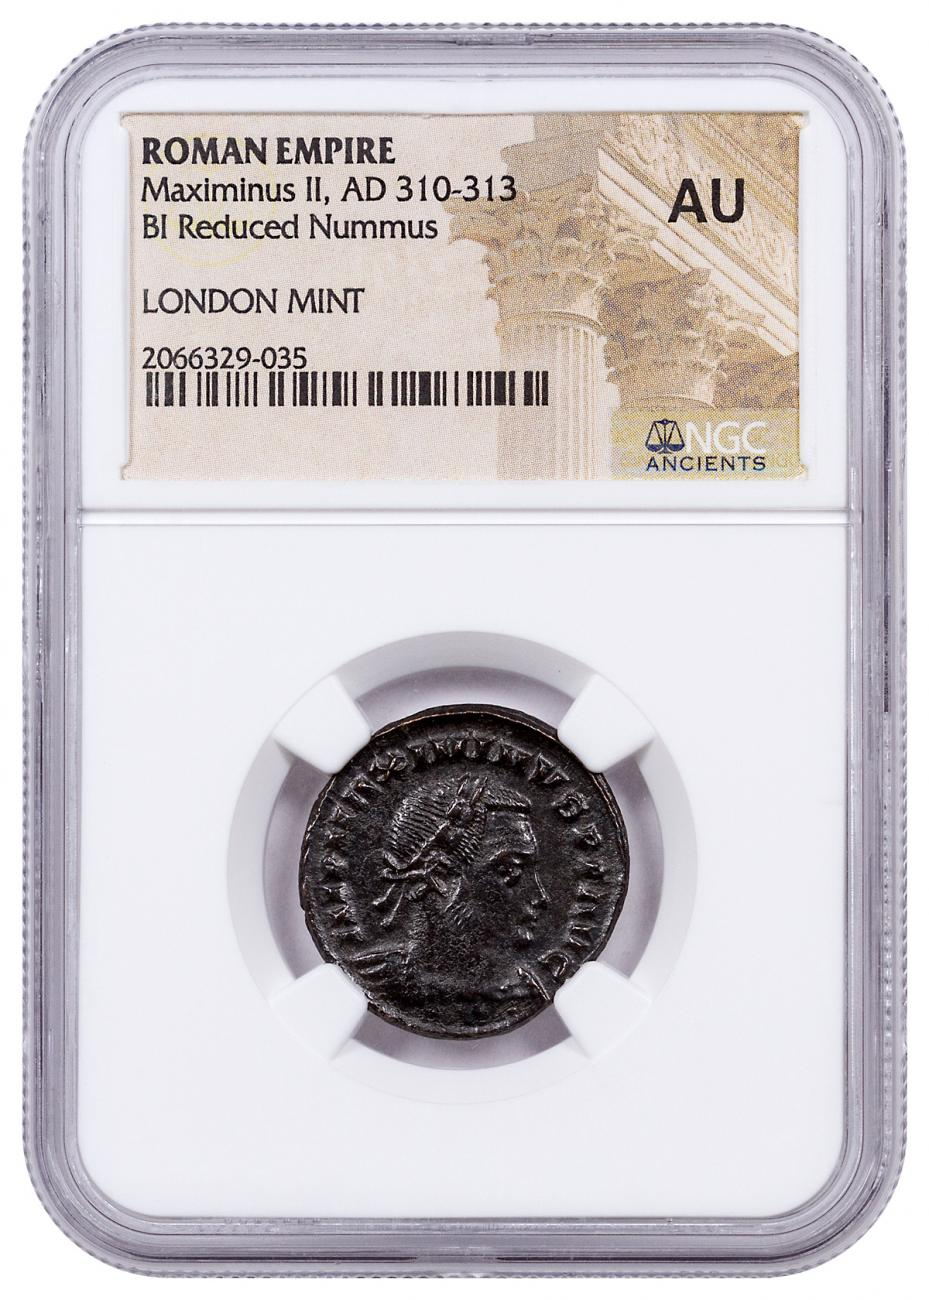 Roman Empire, Billon Nummus of Maximinus II (AD 311-313) - London Mint - NGC AU